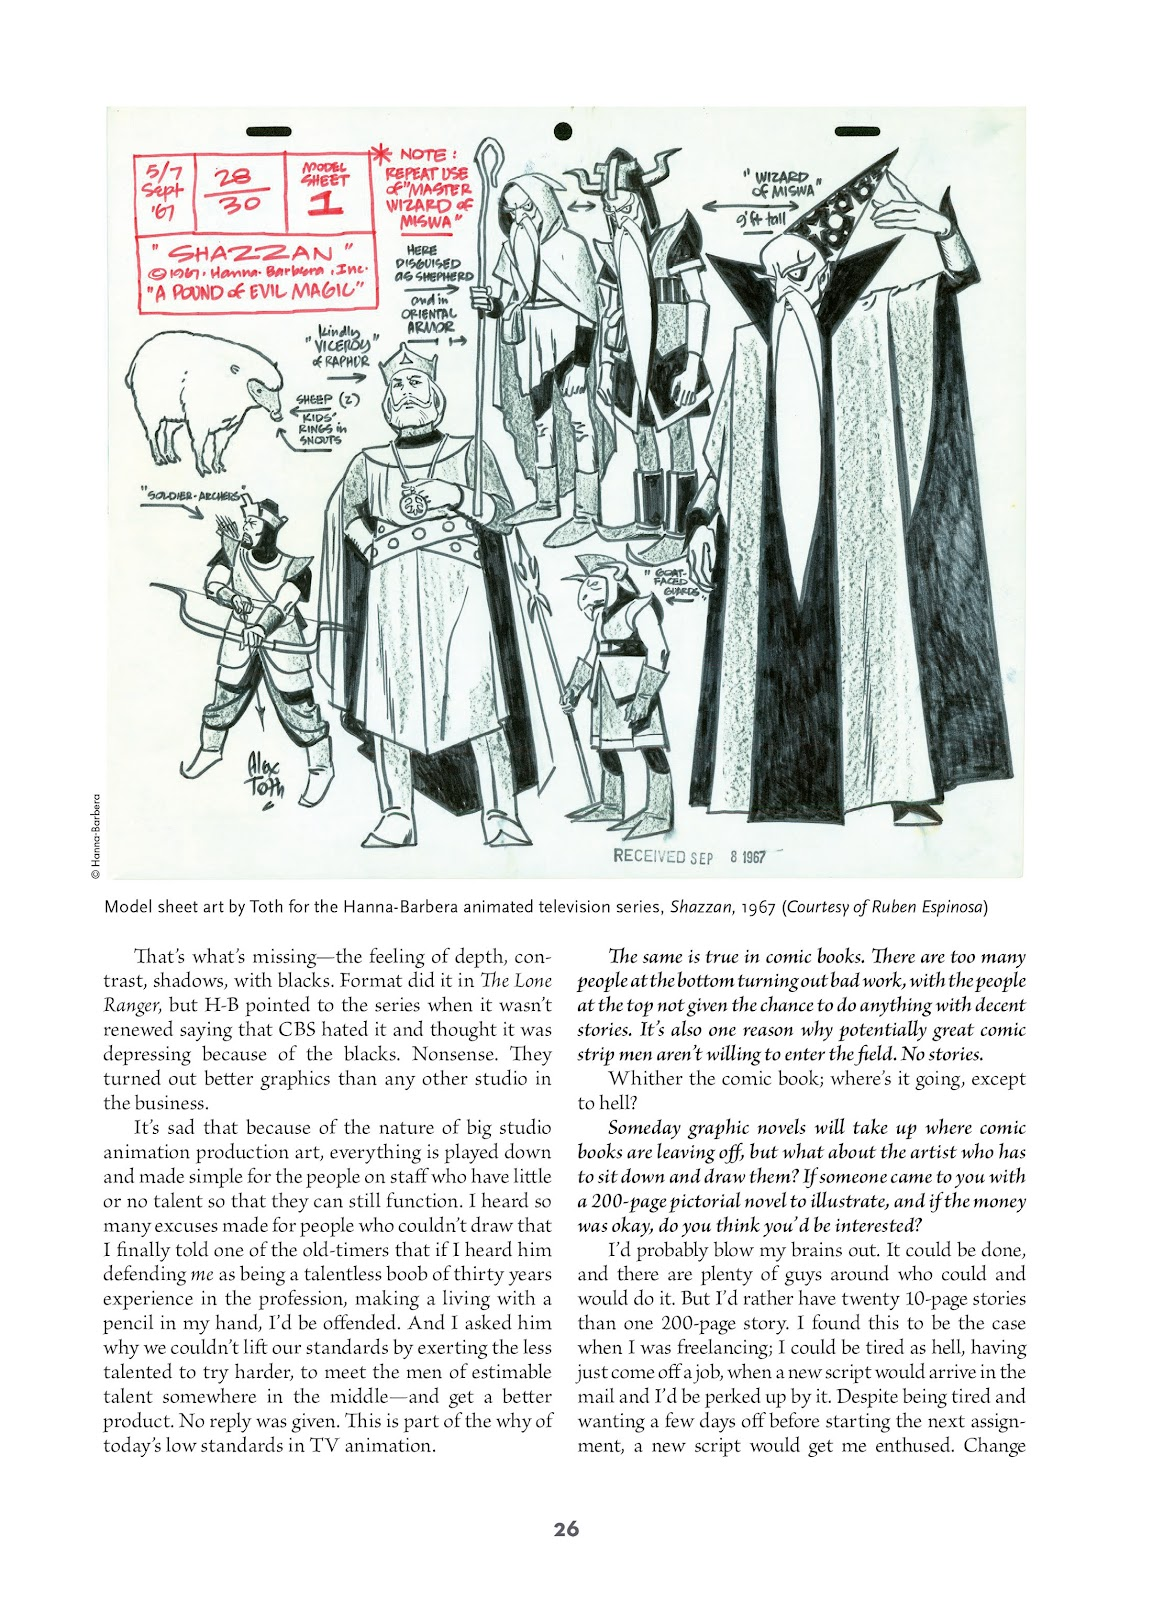 Read online Setting the Standard: Comics by Alex Toth 1952-1954 comic -  Issue # TPB (Part 1) - 25